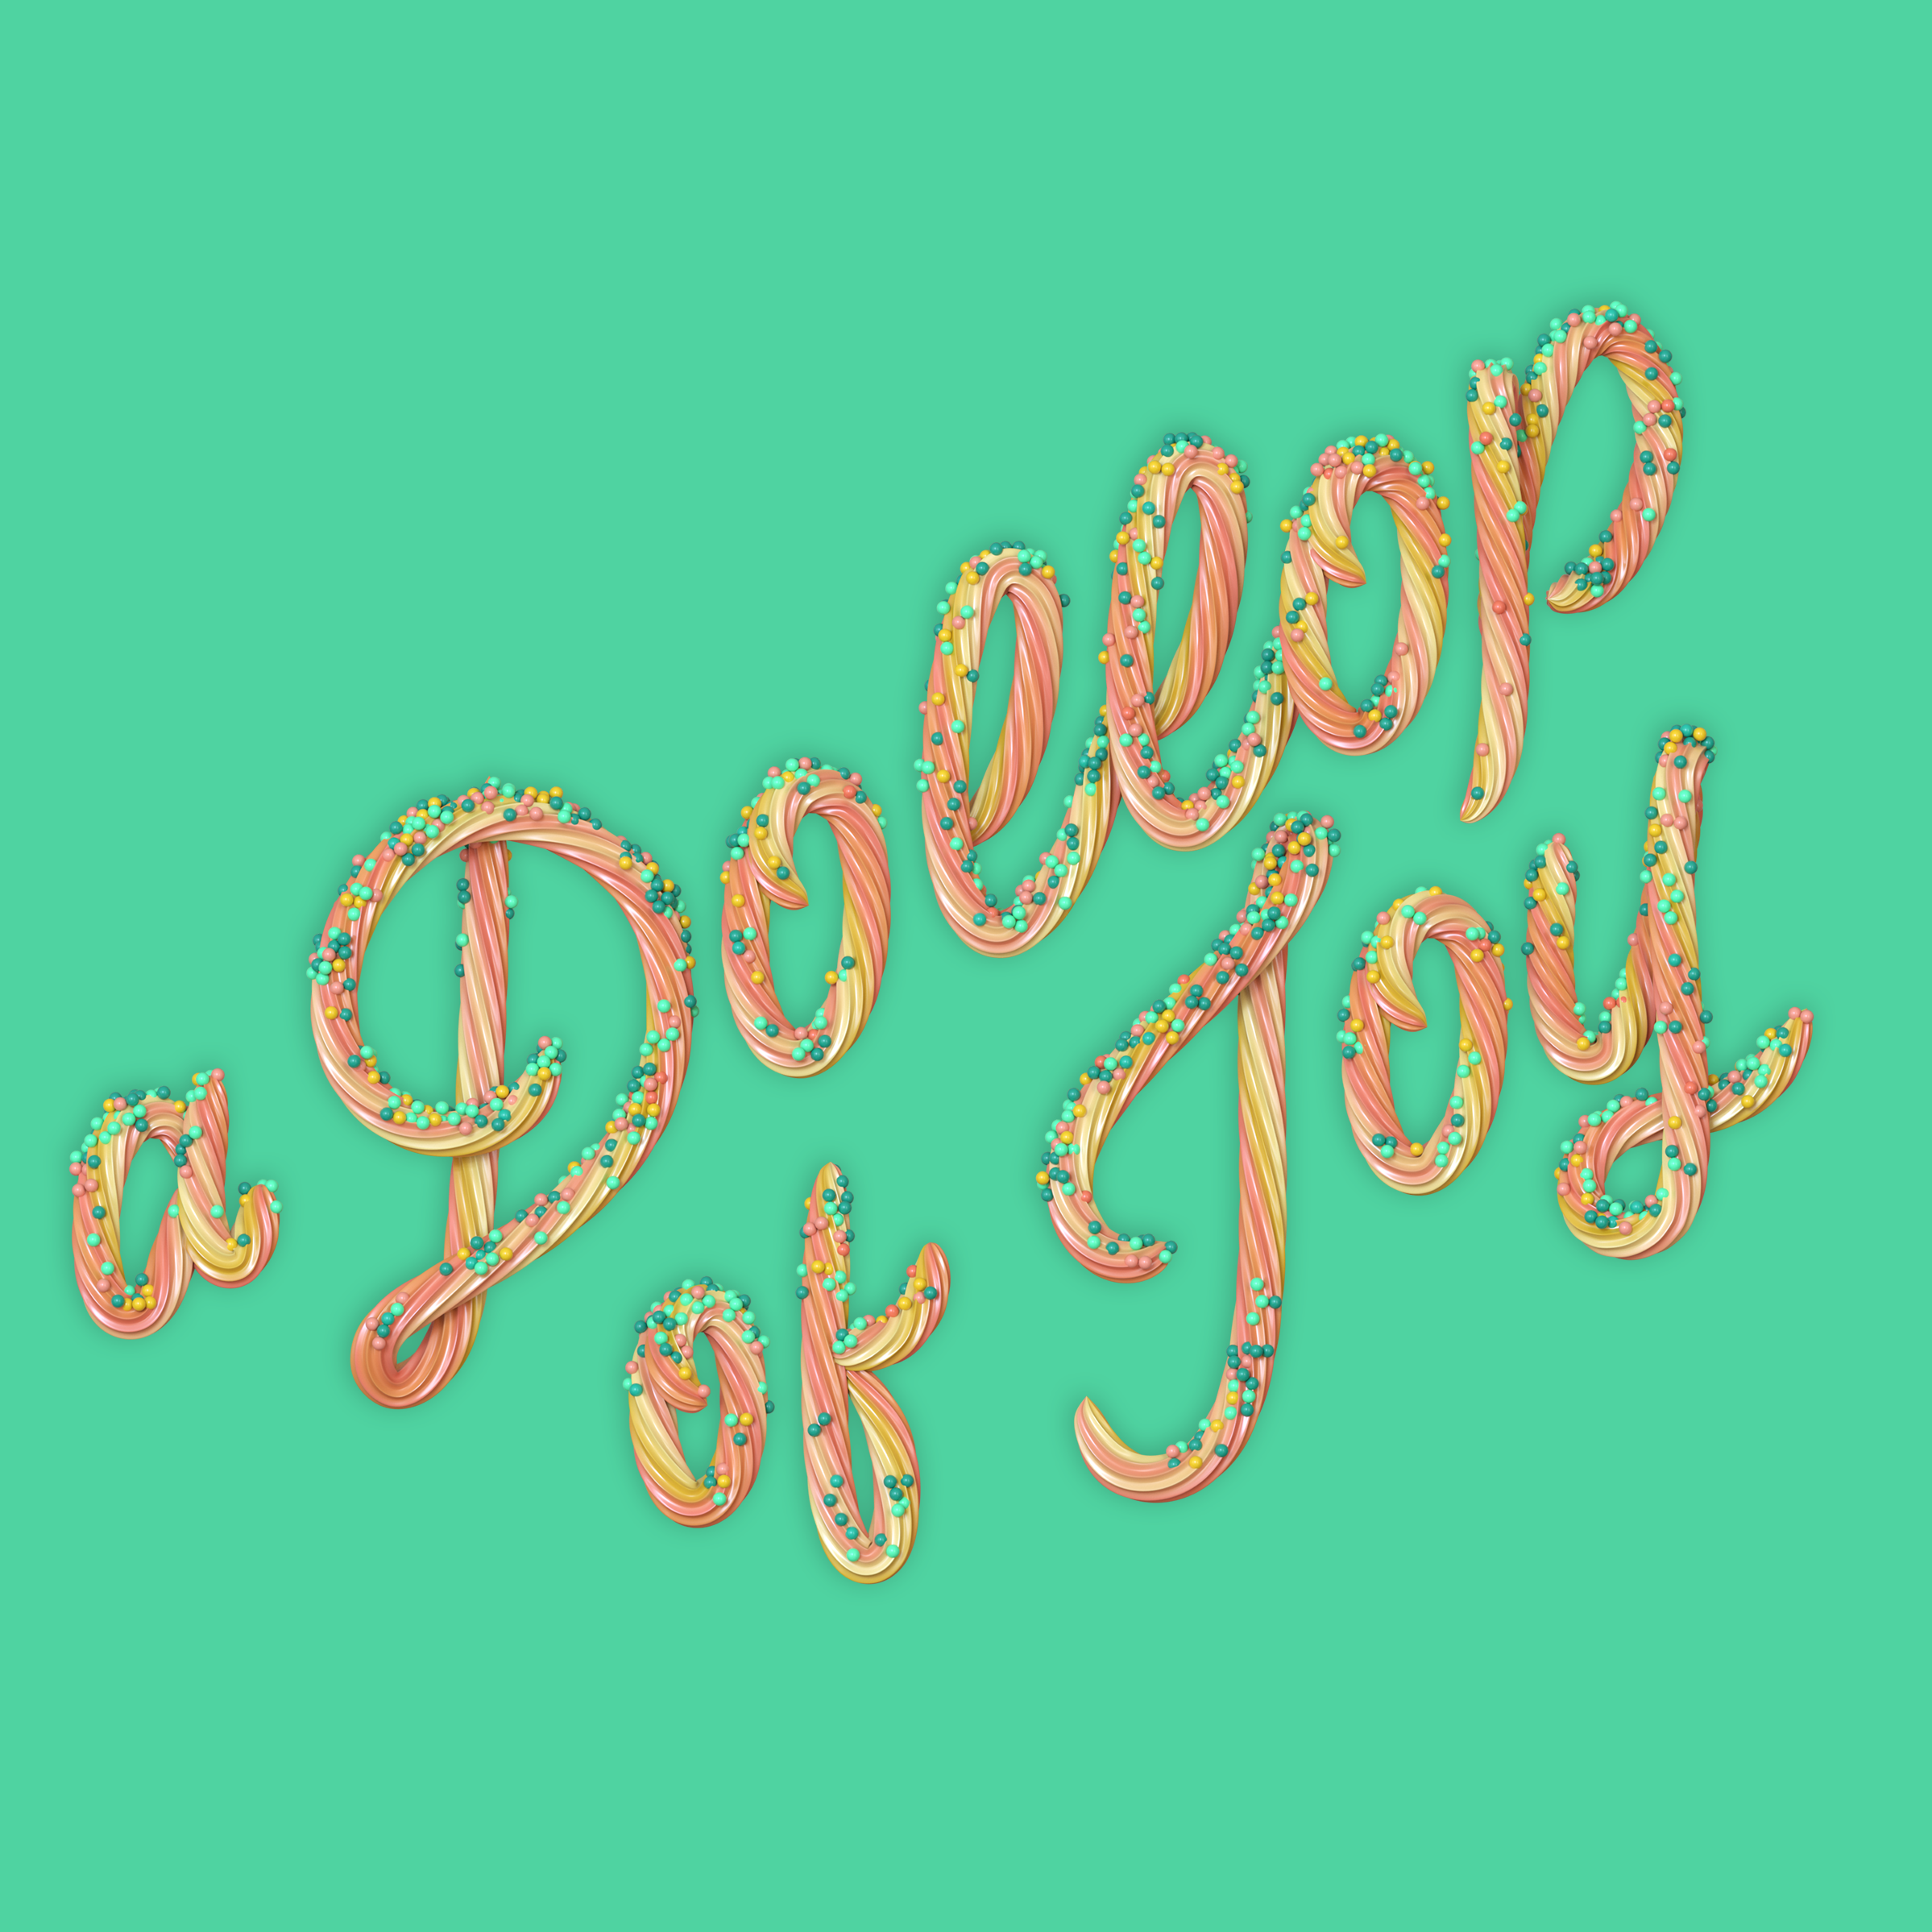 """""""A Dollop of Joy"""" 3D type lettering made of icing by Noah Camp"""